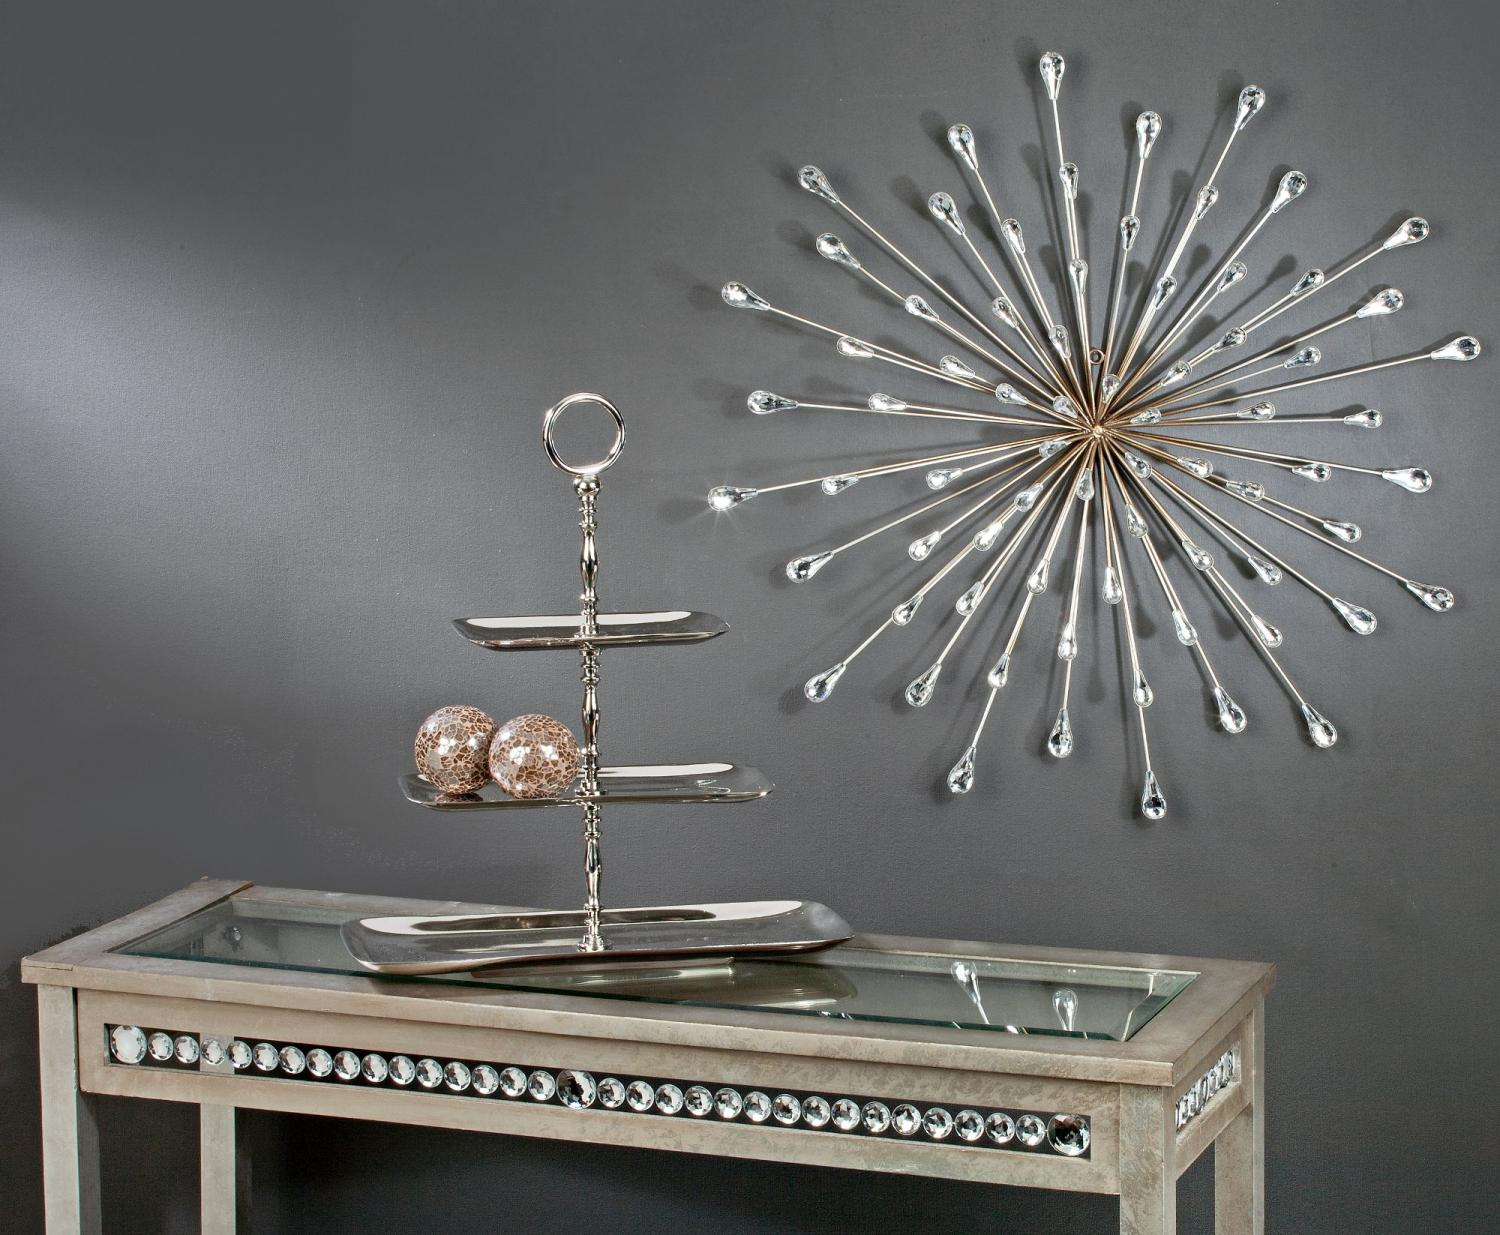 Gorgeous starburst wall decor on grey wall pus table for inspiring home decor ideas